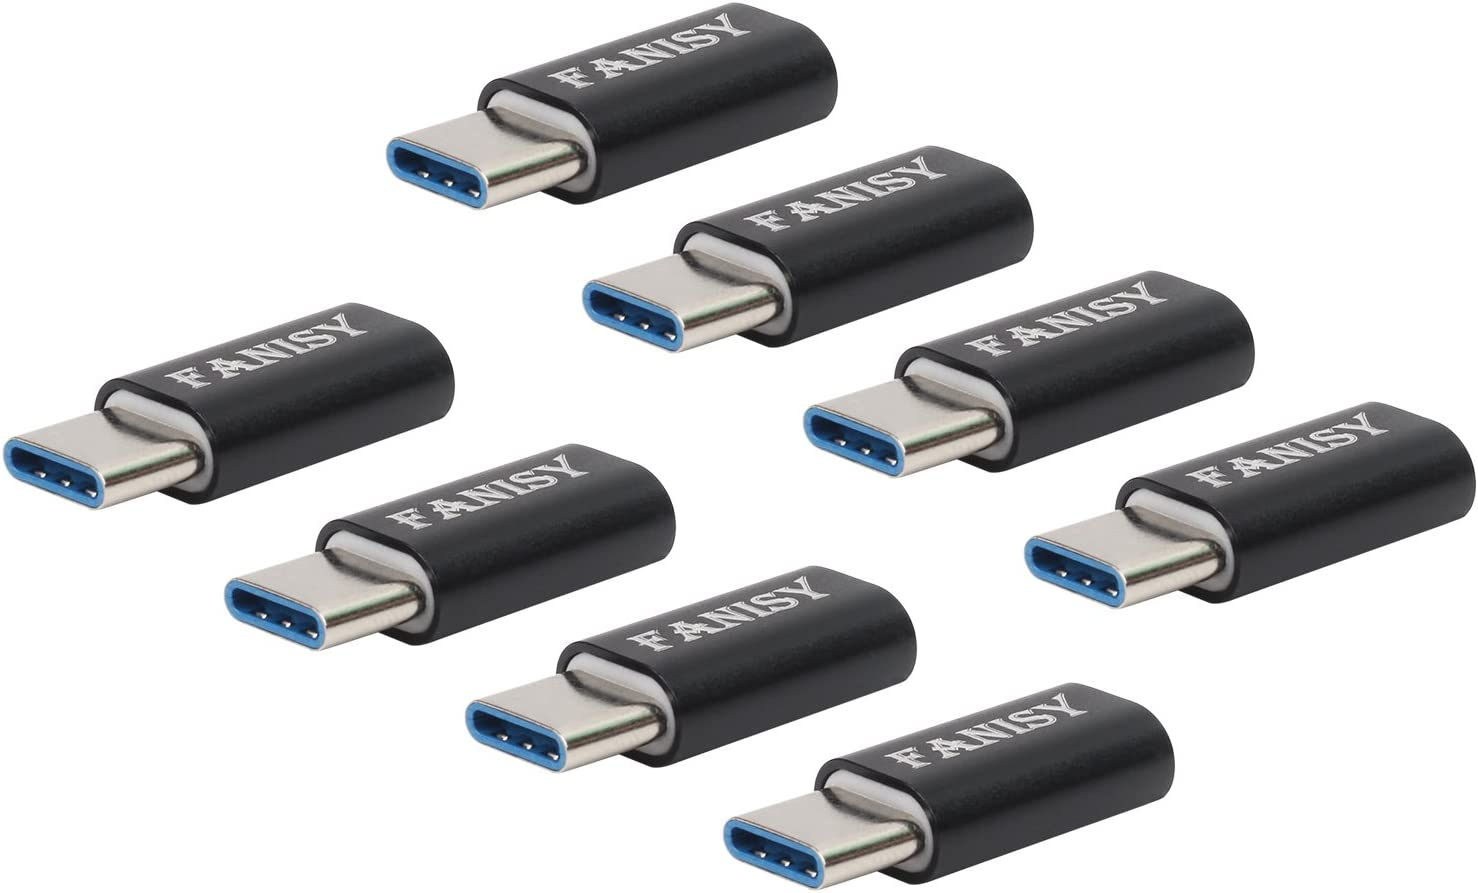 FANISY Type C USB-C Adapter 8-Pack, Micro USB to USB C Adapter Compatible for MacBook ChromeBook Pixel Galaxy S10 S9 S8 Plus Note 10 and More Type C Cable - Black (USB C Adapter 8-Pack)